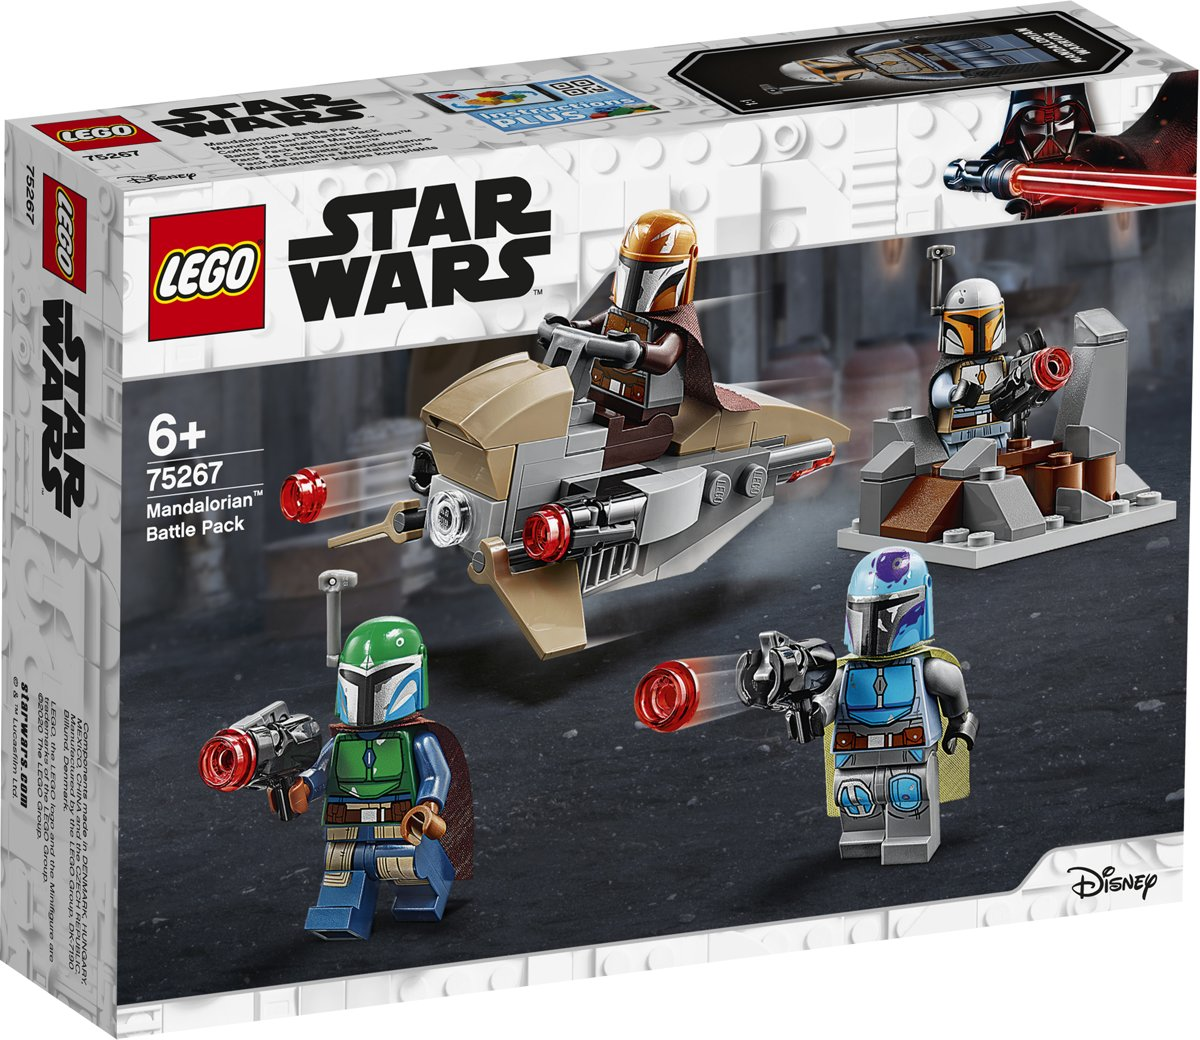 LEGO Star Wars Mandalorian Battle Pack - 75267